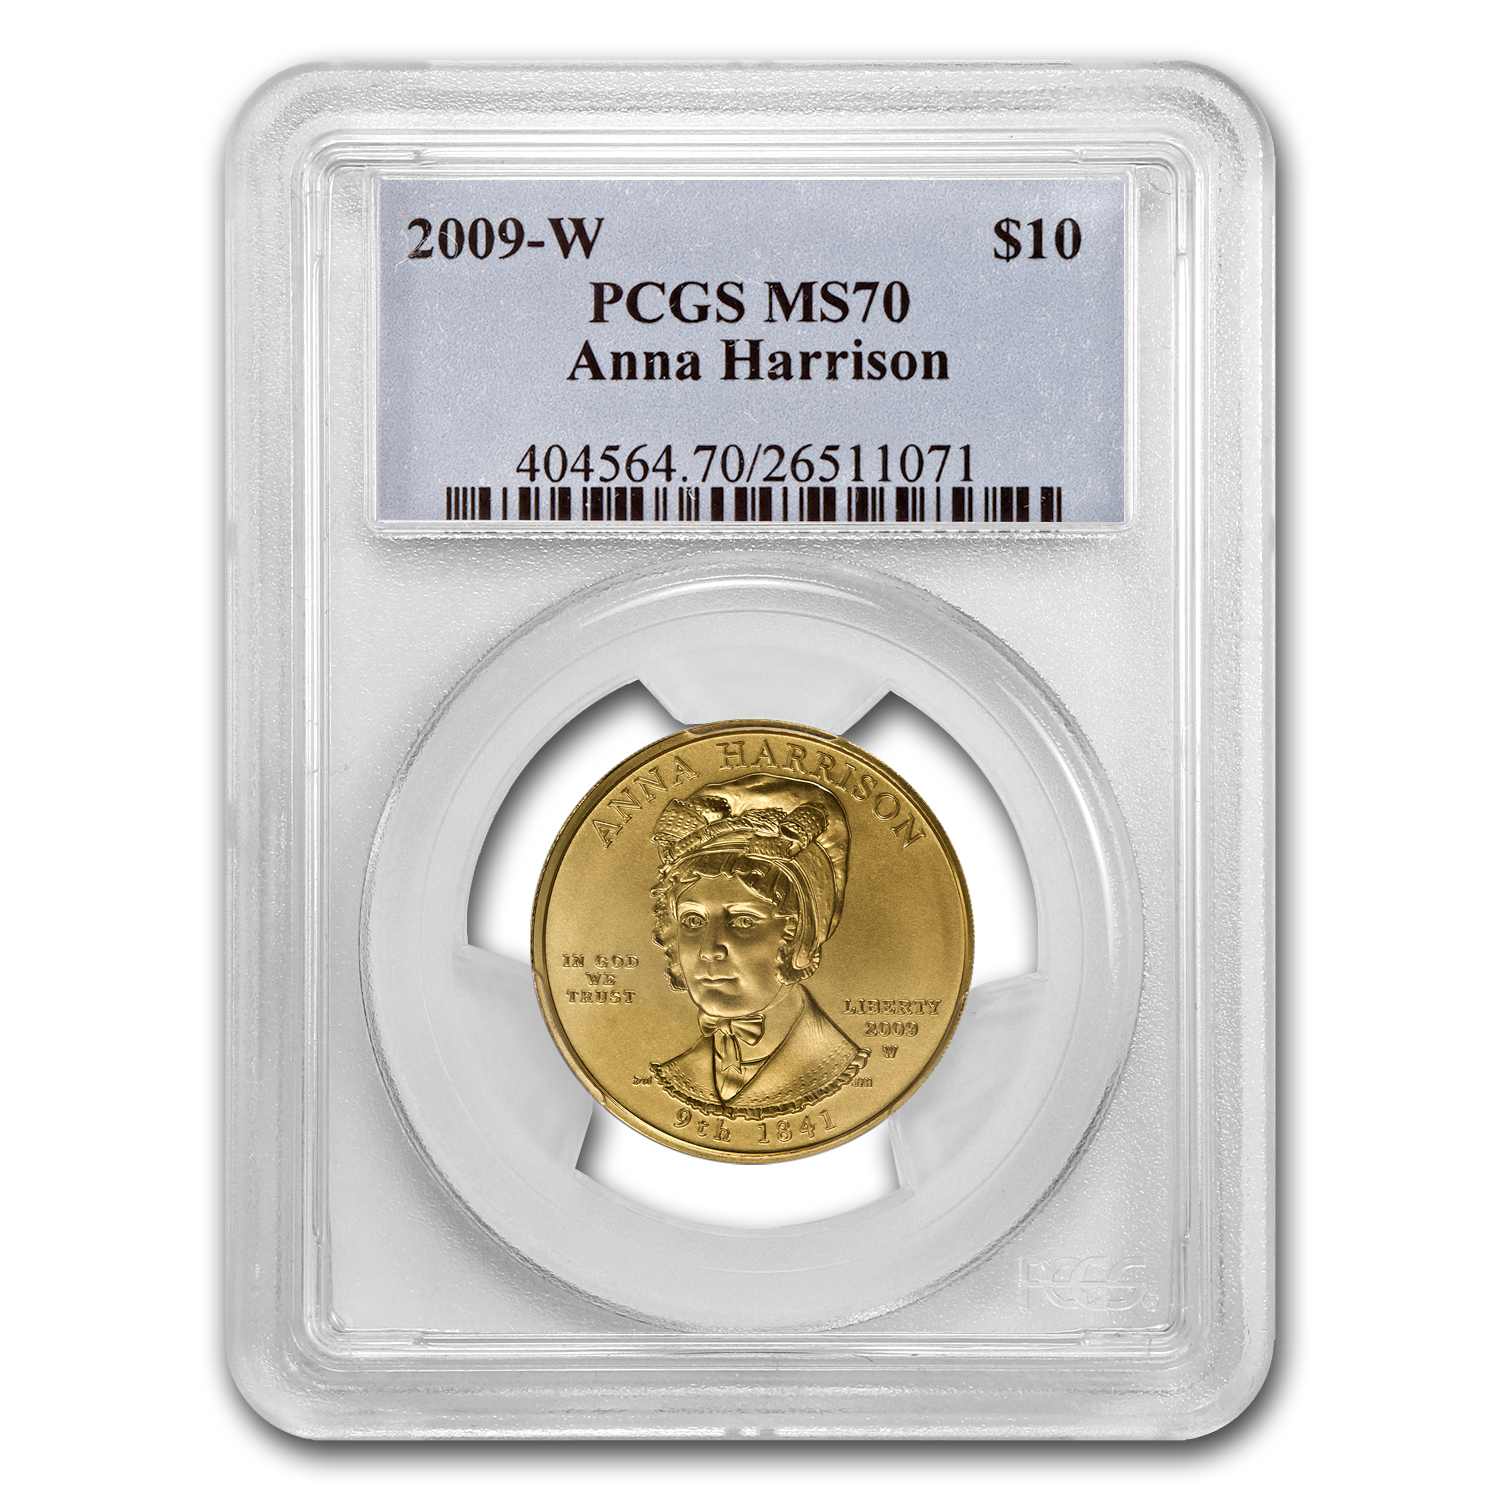 2009-W 1/2 oz Gold Anna Harrison MS-70 PCGS